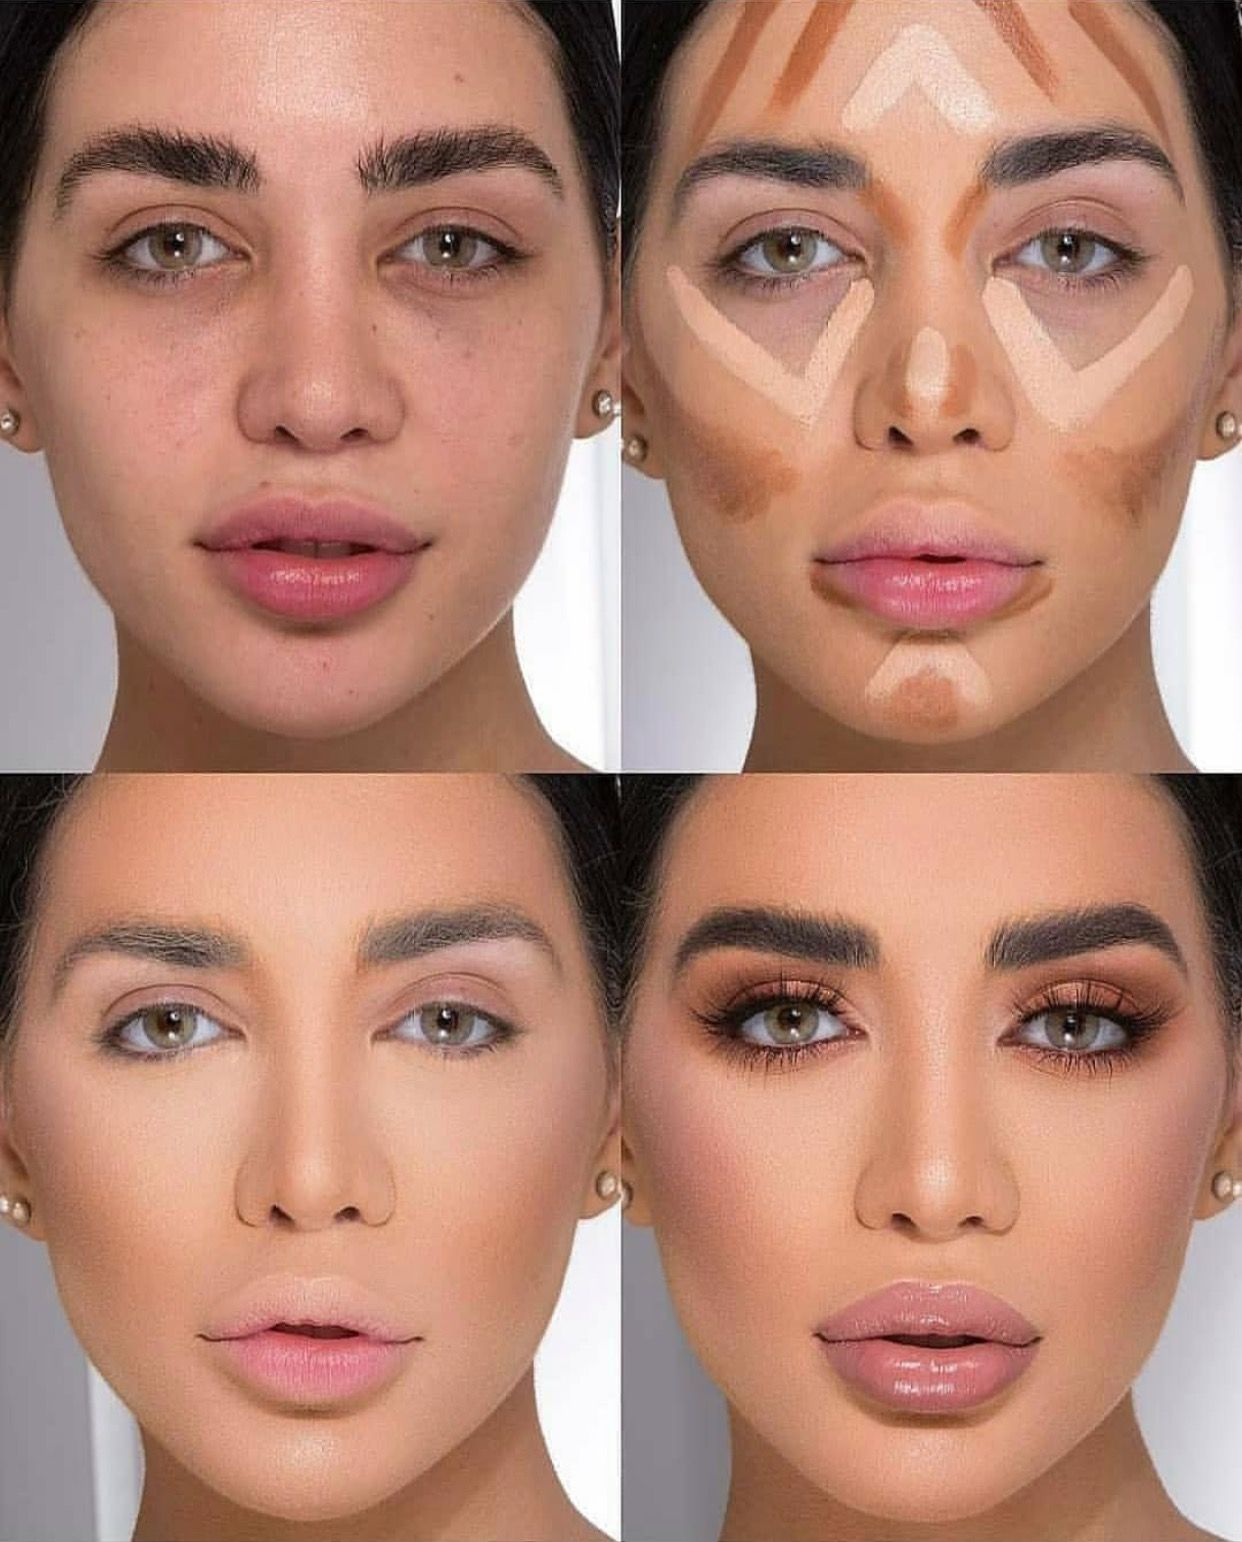 #countouring Makeup | Highlighter makeup, Contour makeup ...